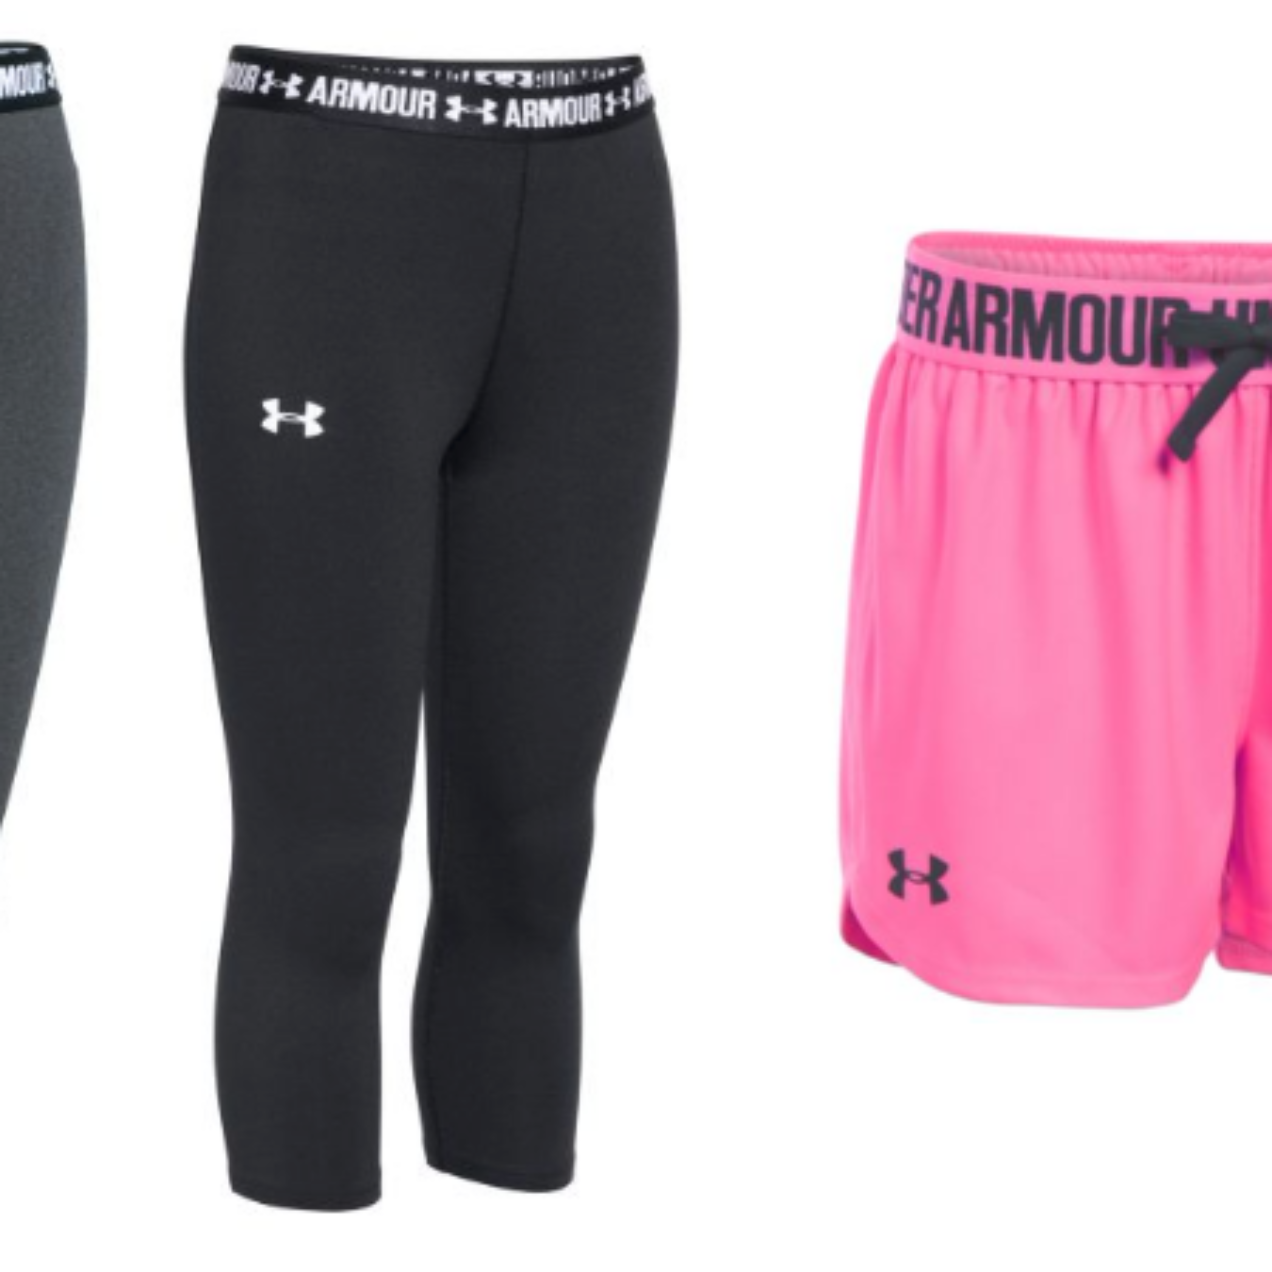 Under Armour Girls Yoga Pants Only $9 – Shorts Only $6